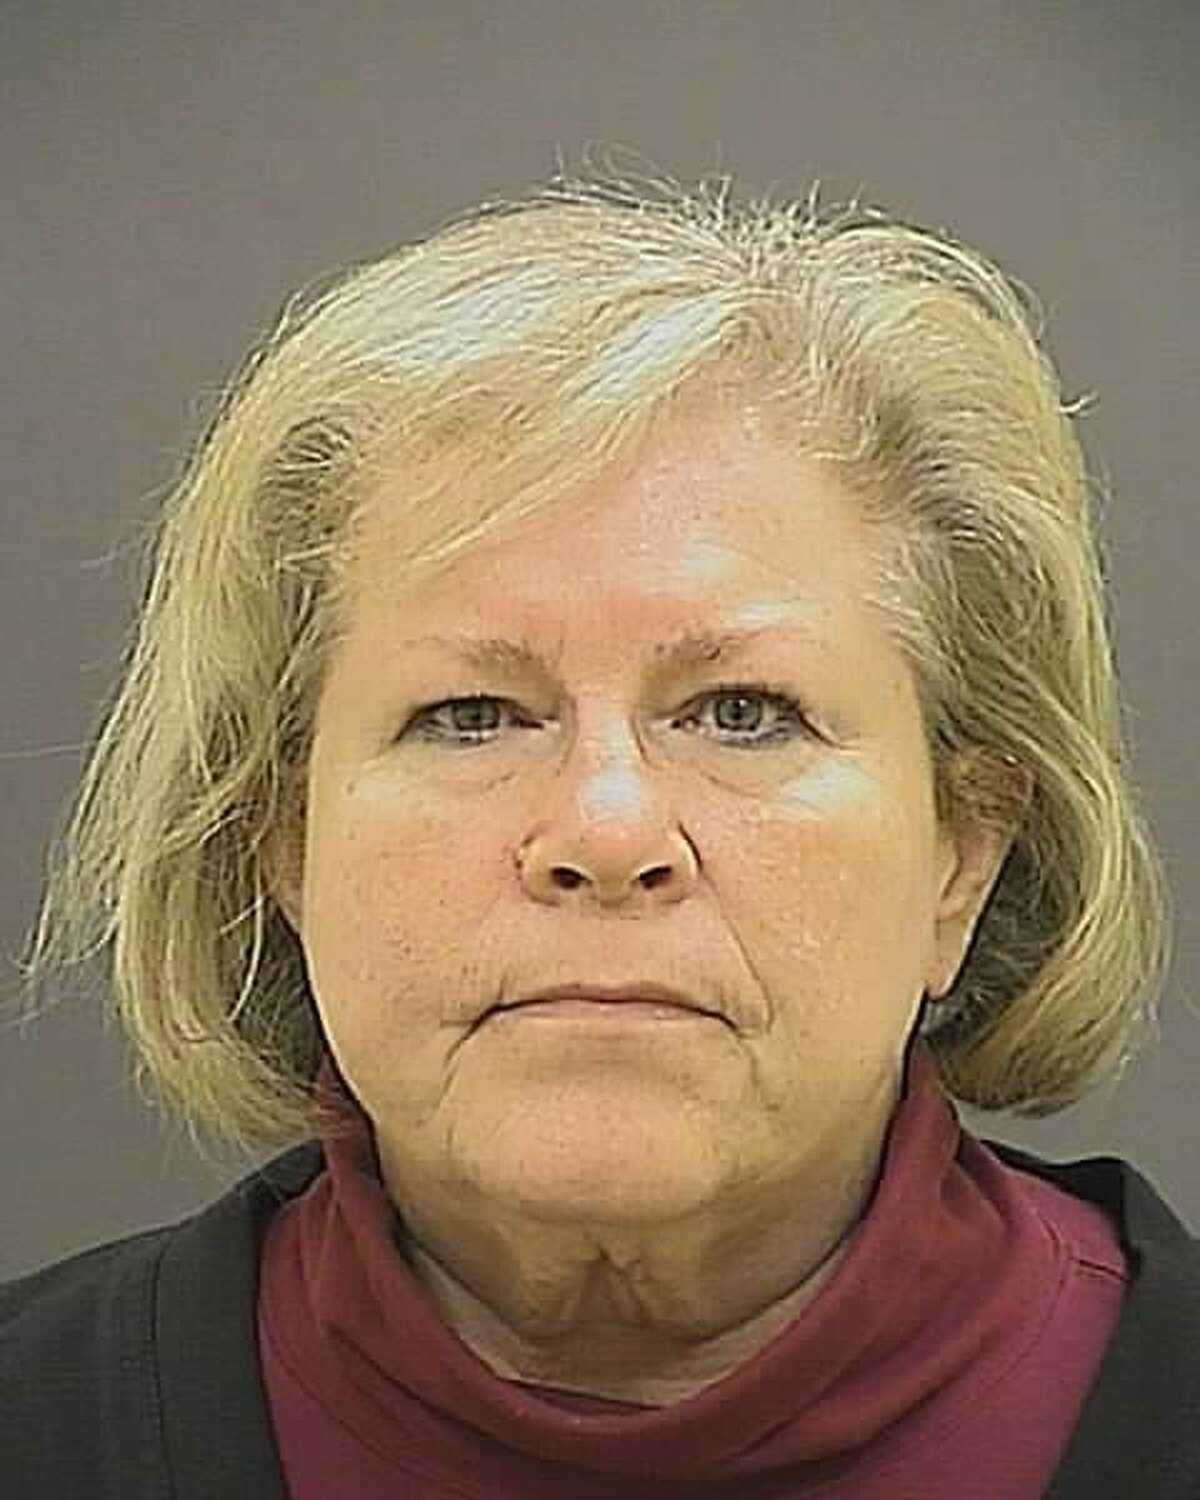 This photo provided by the Baltimore Police Department shows Bishop Heather Cook. Maryland's second-highest ranking Episcopal leader and the first female bishop in her diocese was charged with drunken driving and manslaughter after fatally striking a cyclist in late December. Cook, 58, turned herself in to authorities Friday, Jan. 9, 2015, according to her attorney, David Irwin. Online court records show Cook's bail was set at $2.5 million. A trial is scheduled for Feb. 6. (AP Photo/ Baltimore Police Department)